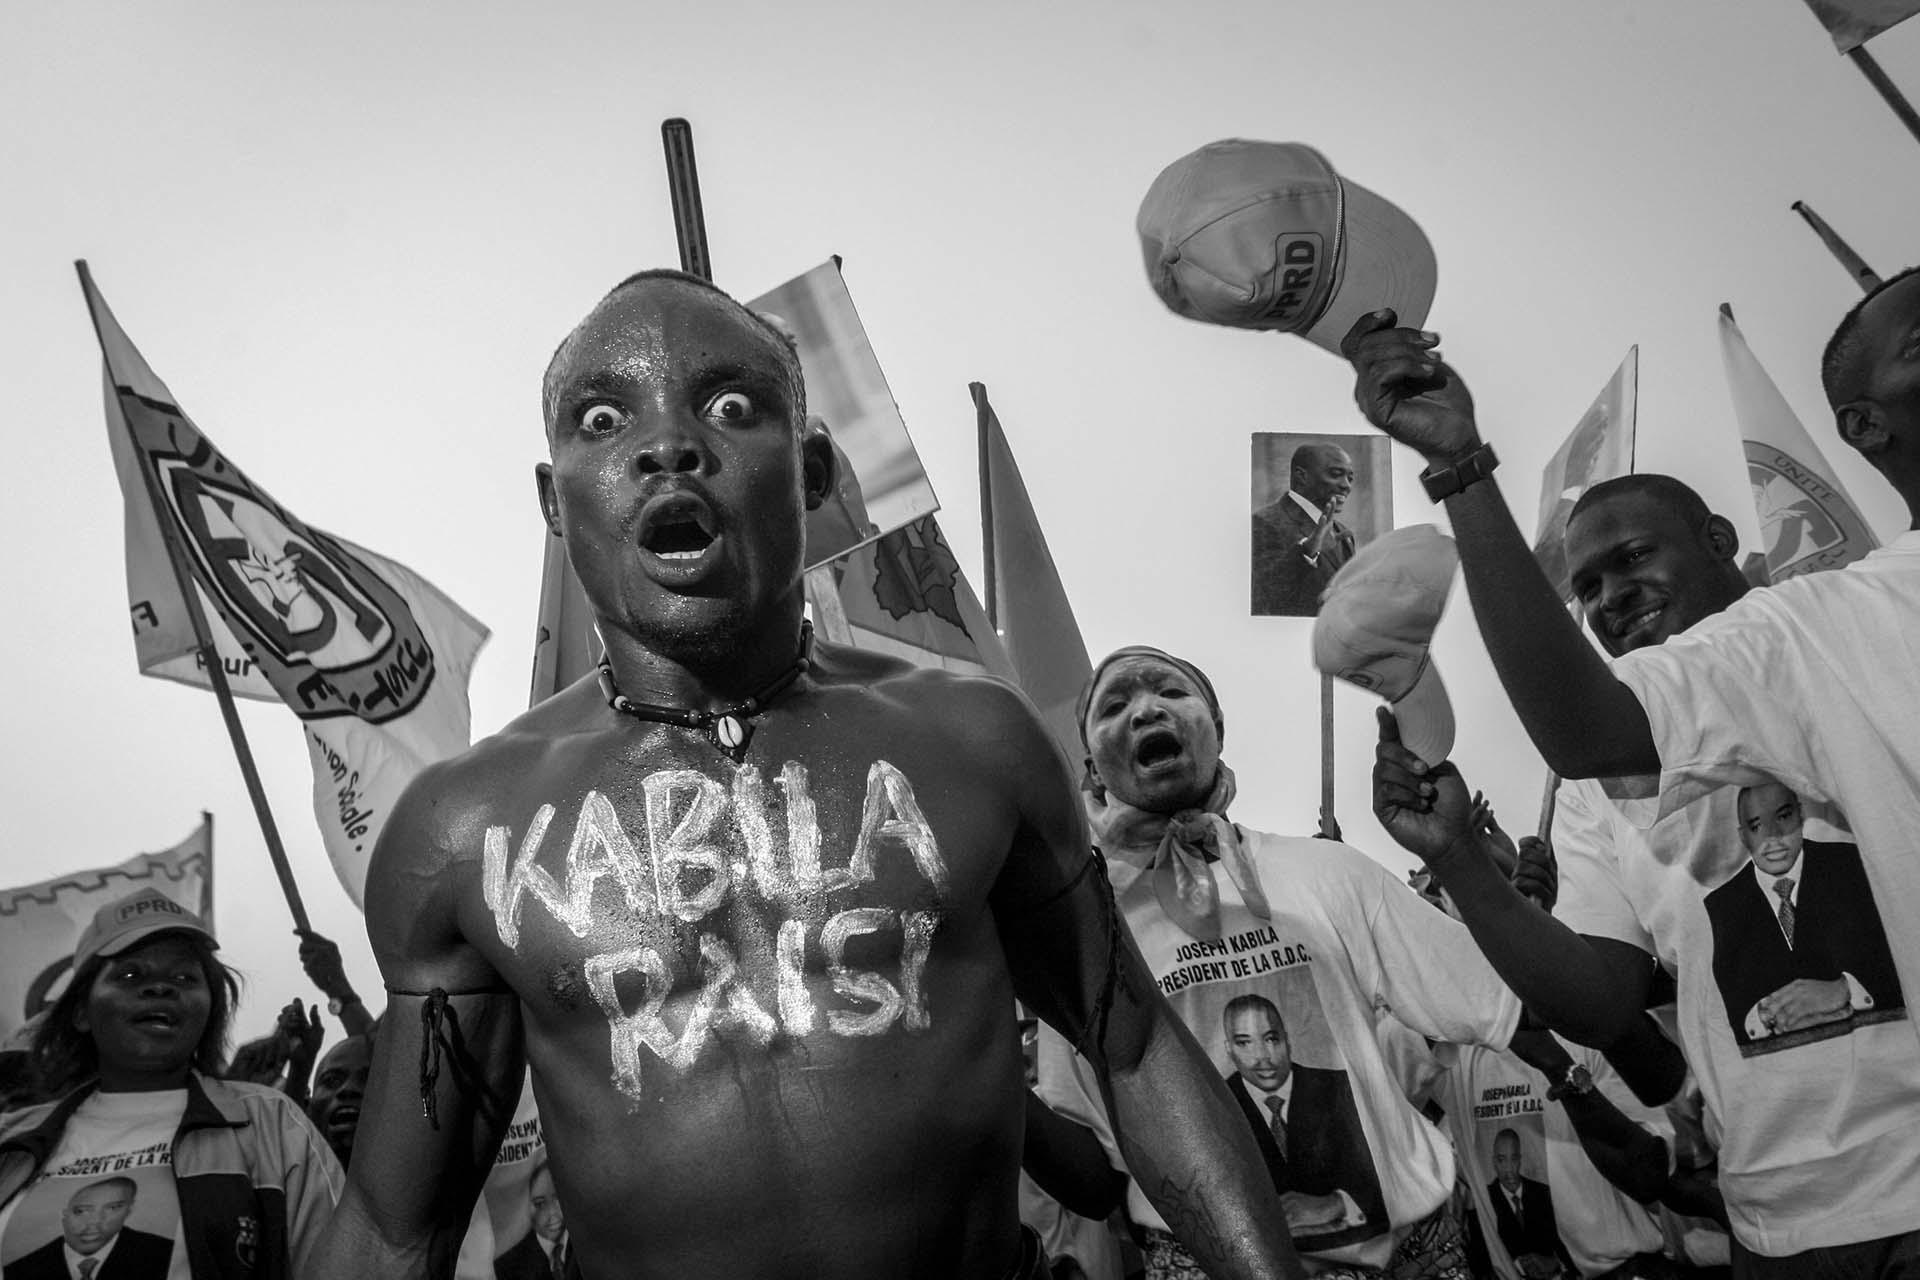 Supporters of Joseph Kabila in a frenzy at a rally in Kinshasa.